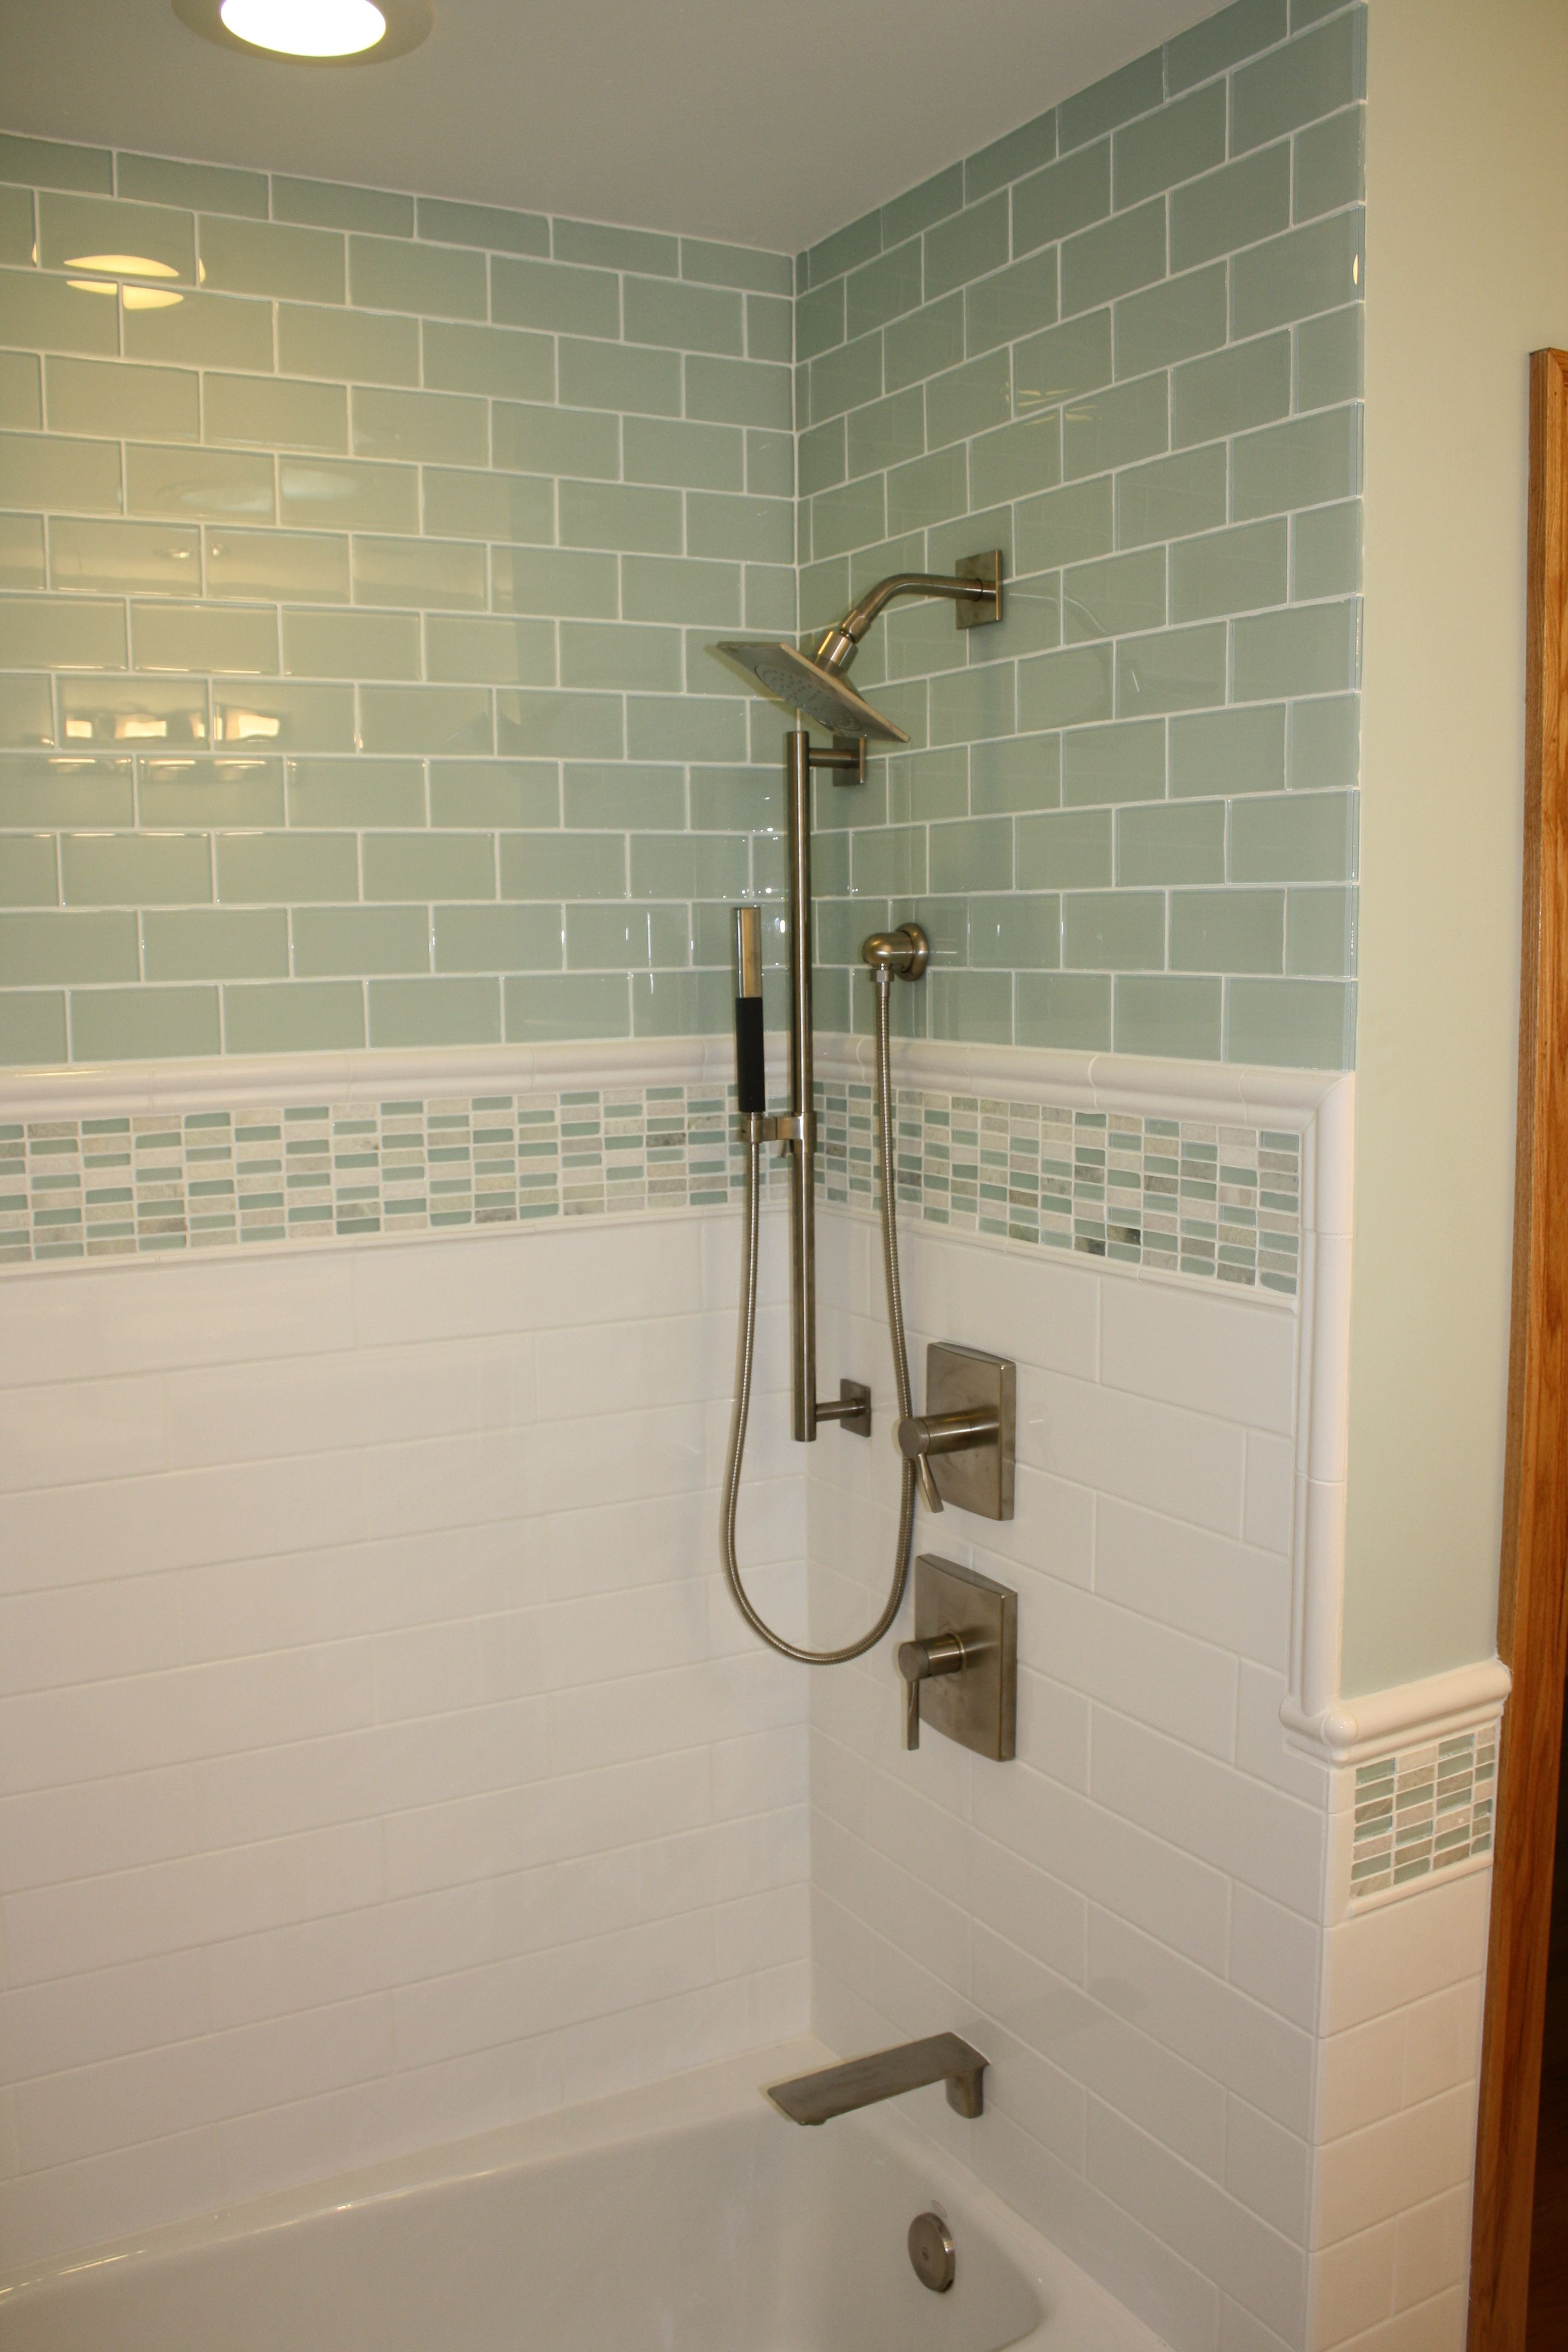 Bathroom tile I like the molding around the edges | Home Upgrade ...